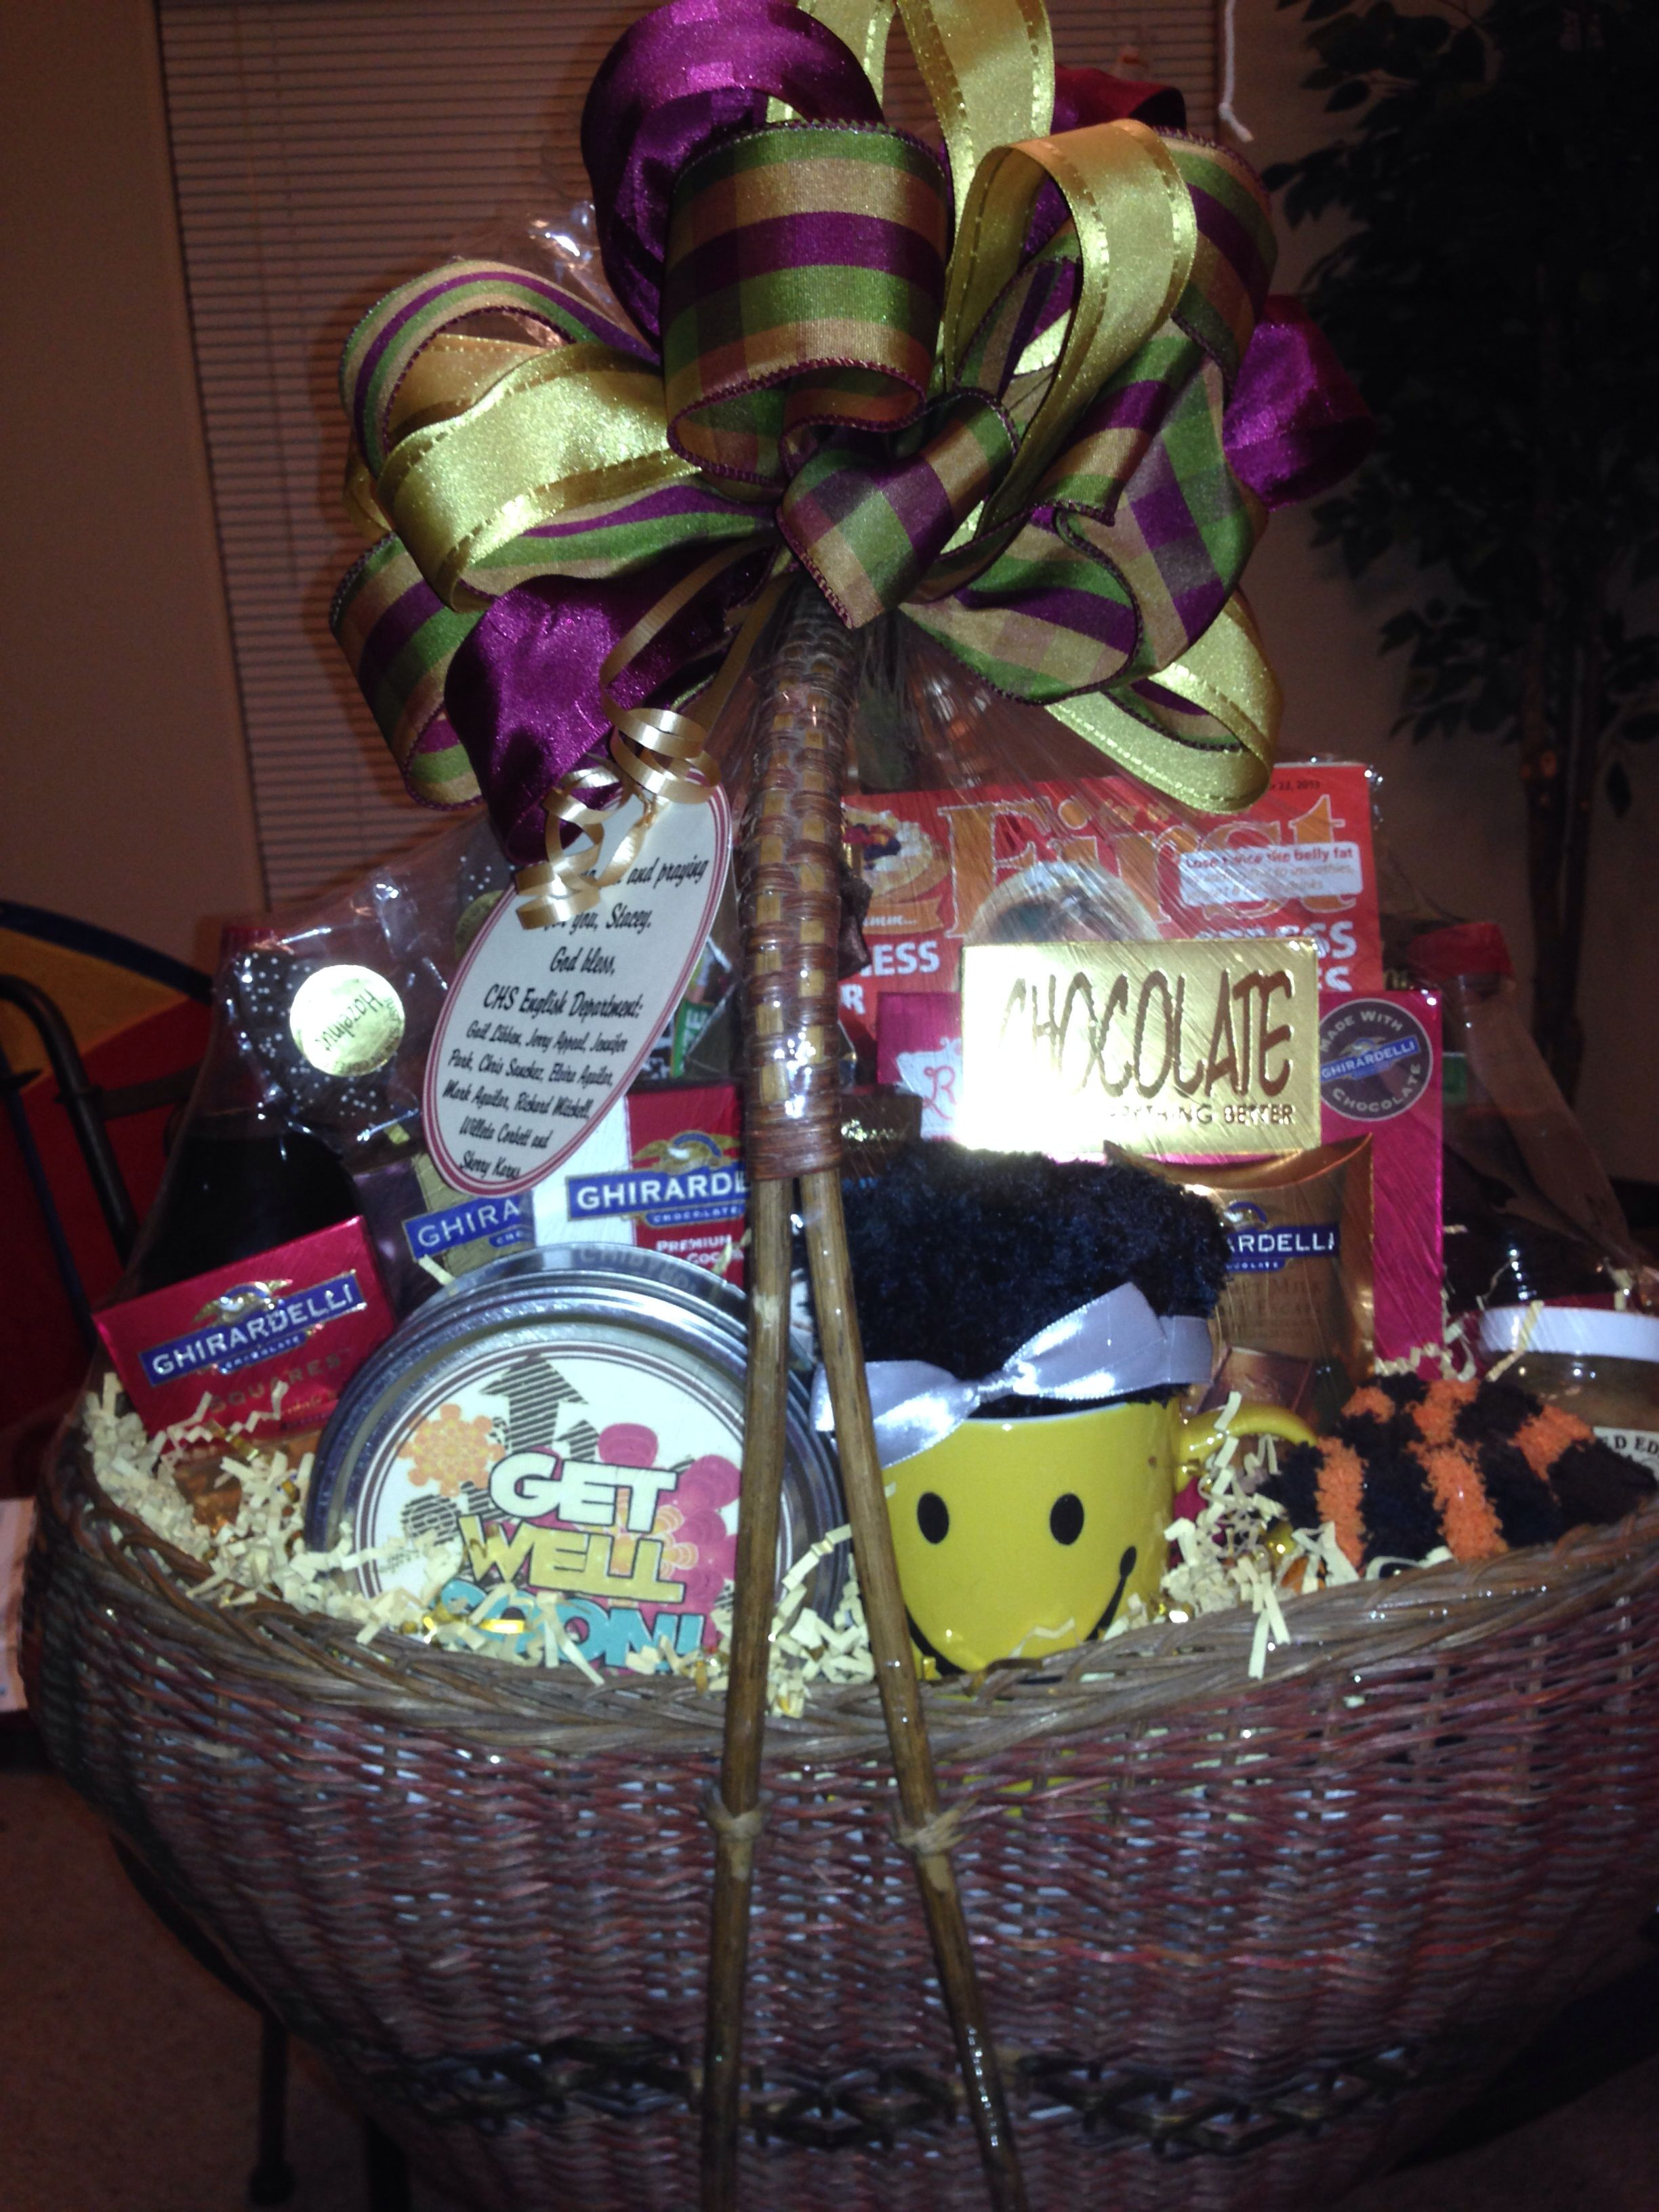 Beautiful gift basket from my friends at work. (With